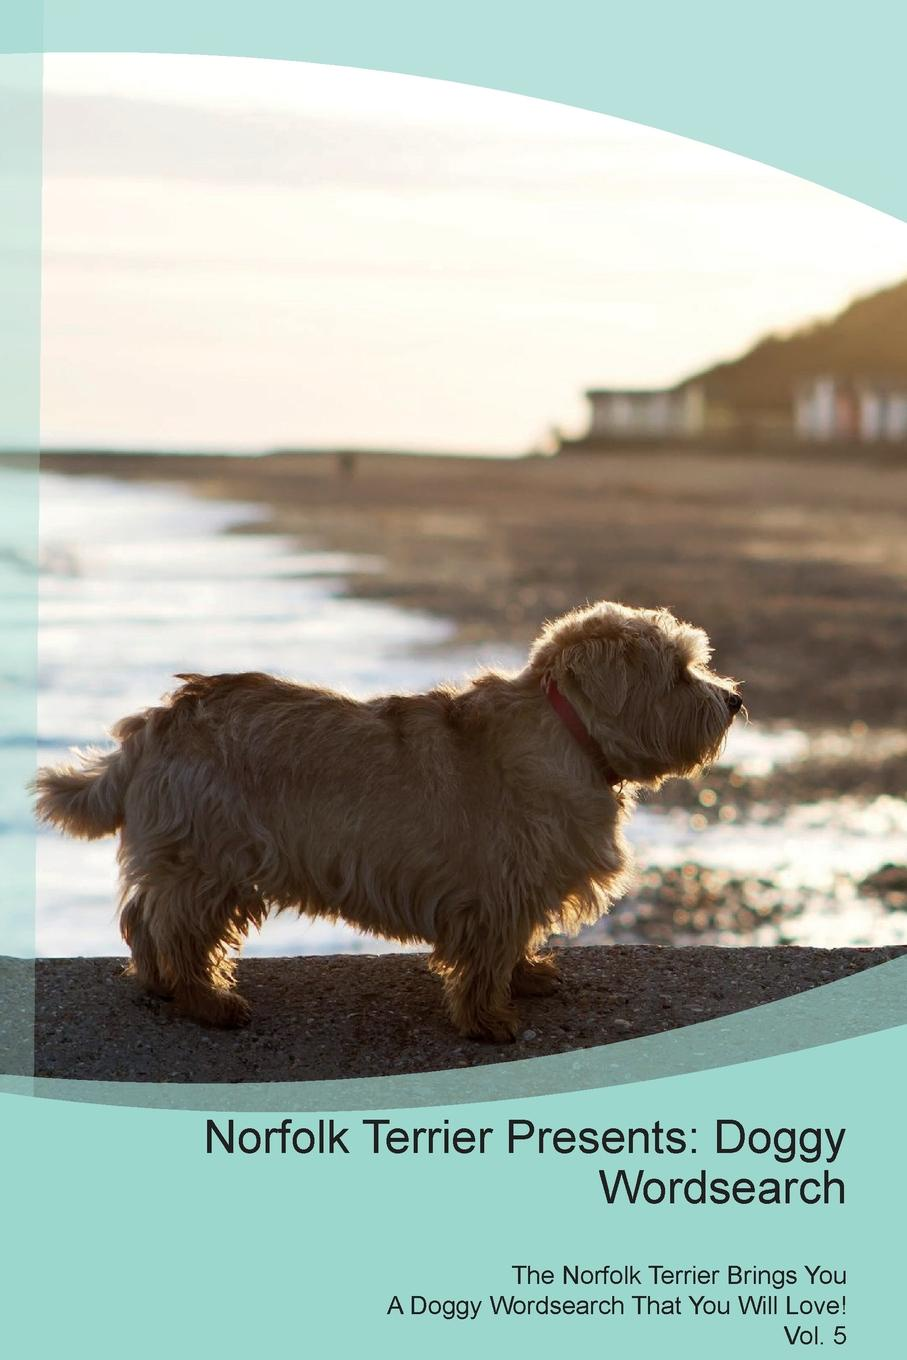 Doggy Puzzles Norfolk Terrier Presents. Wordsearch The Brings You A That Will Love! Vol. 5